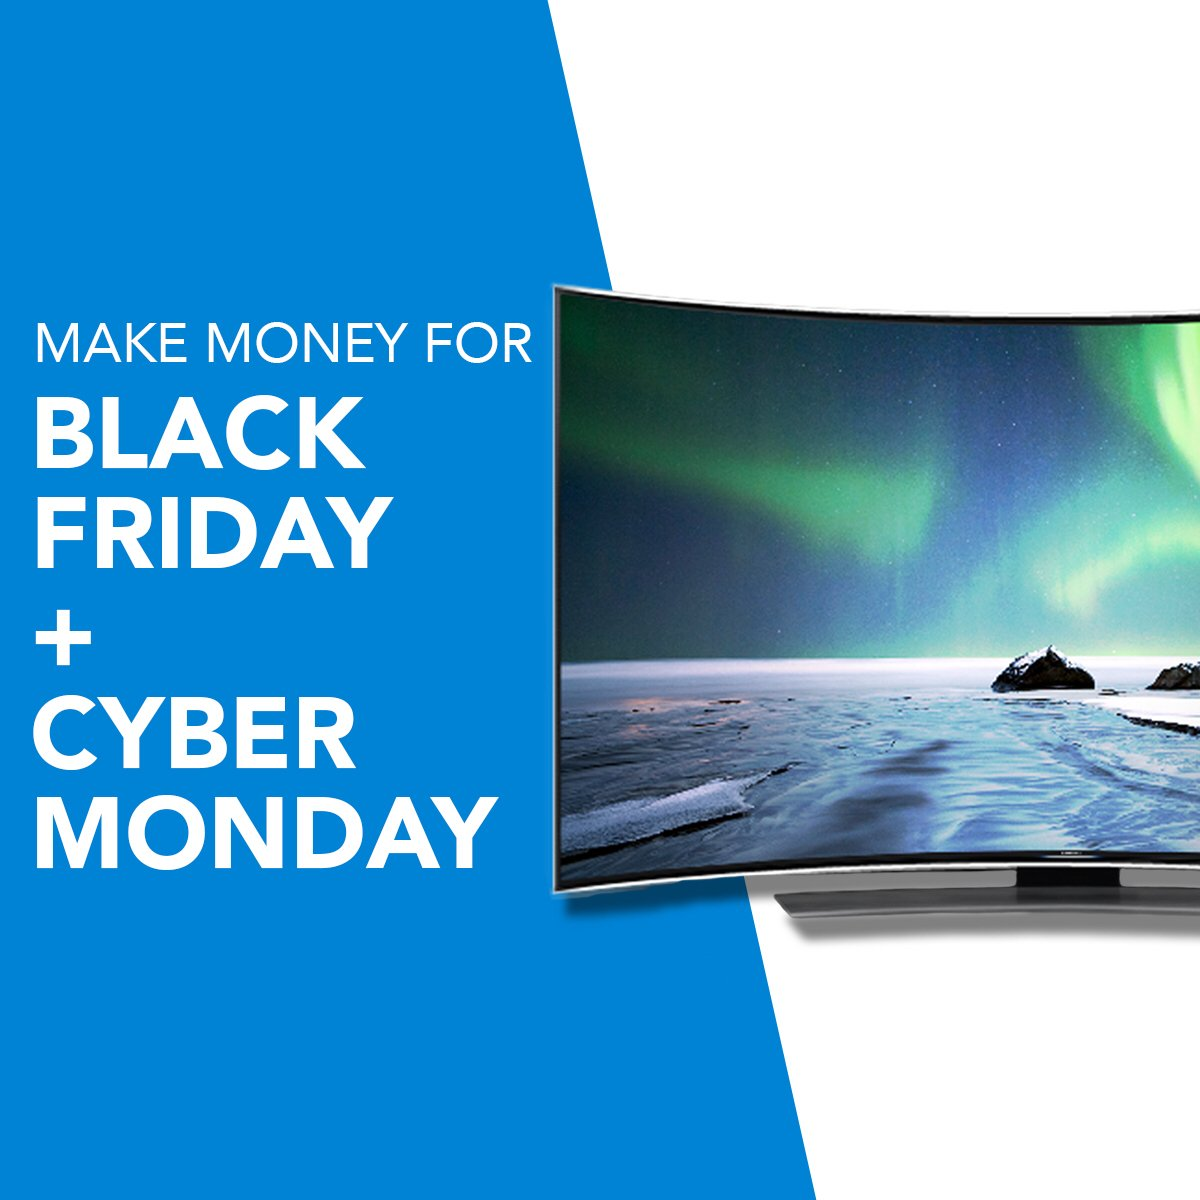 Looking to make some #extracash for the #holidays and for your #BlackFriday #shopping? Post your used things for sale and start making money today. Post by Sunday with #VideoIsBetter in the product description for your chance to win a $500 #AmericanExpress gift card. #giveaway<br>http://pic.twitter.com/R6gK91C0oy